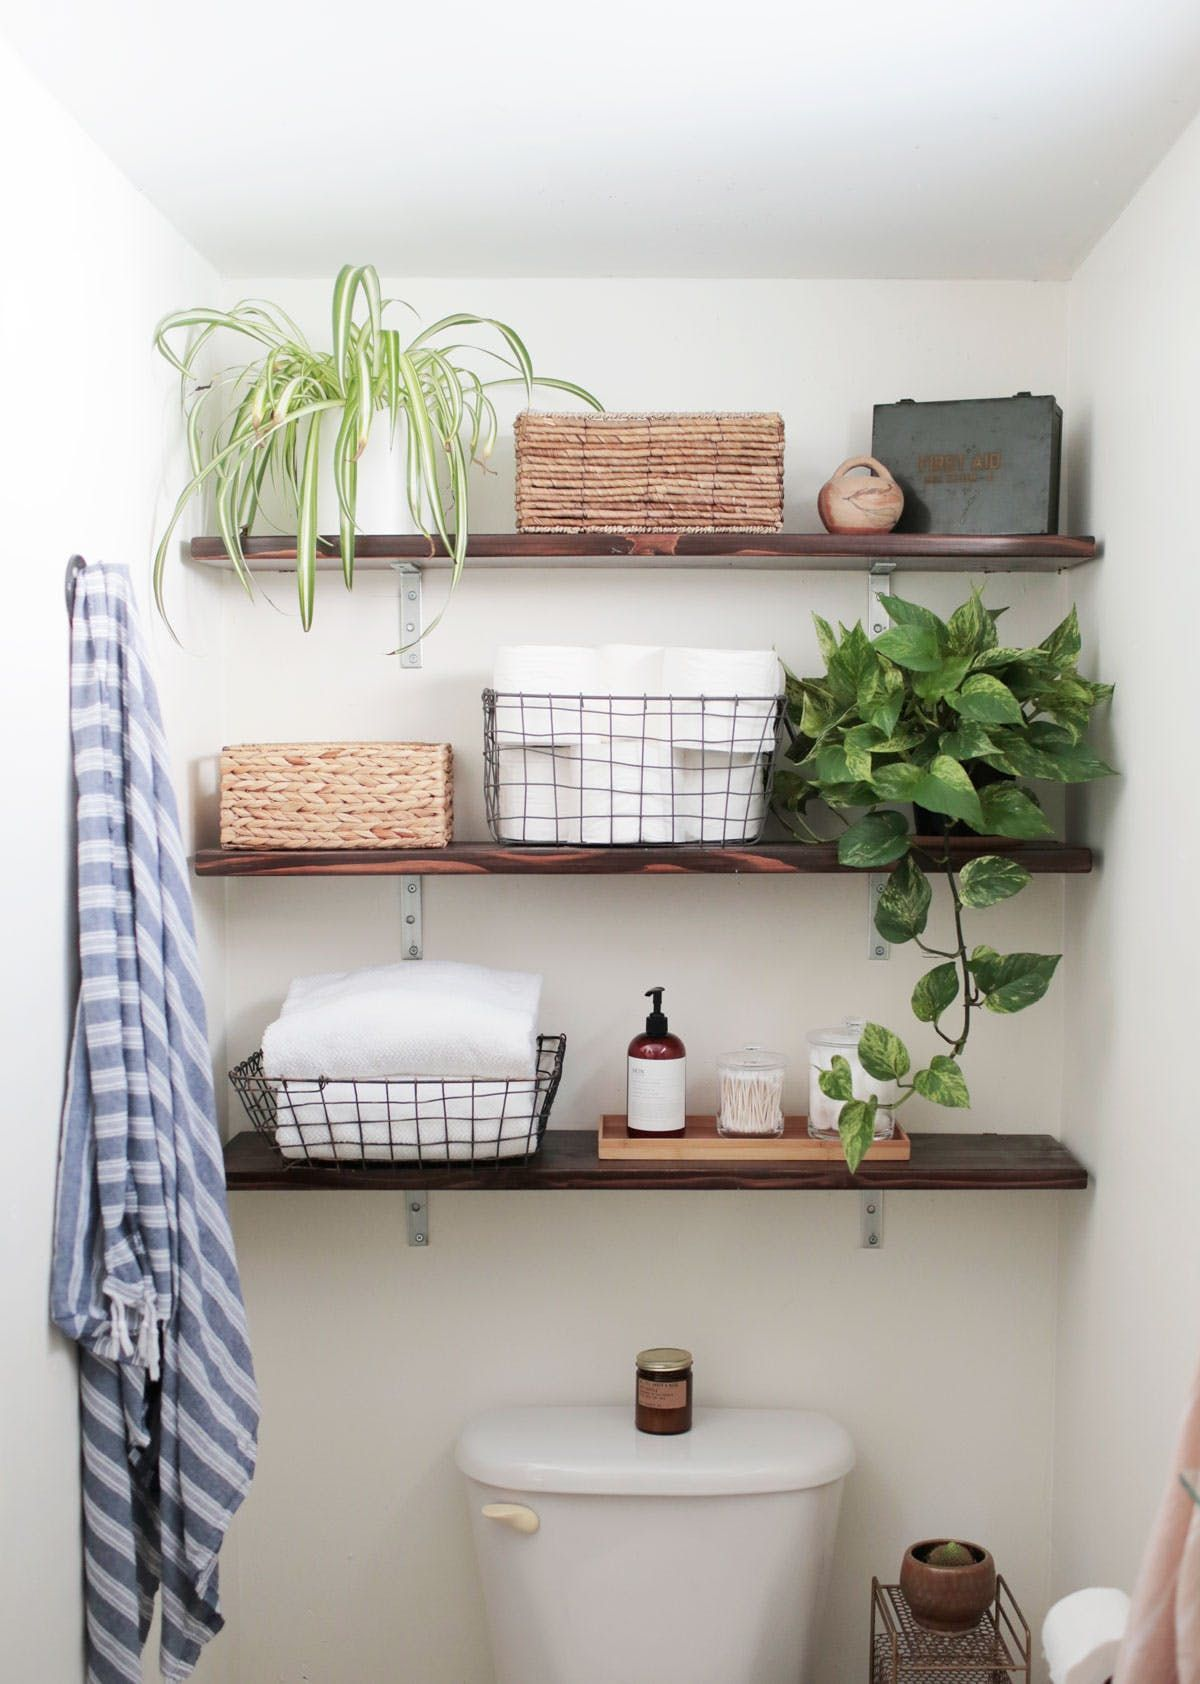 The Best Things You Can Do to Your Bathroom for Under $100 -   17 diy Bathroom cupboard ideas